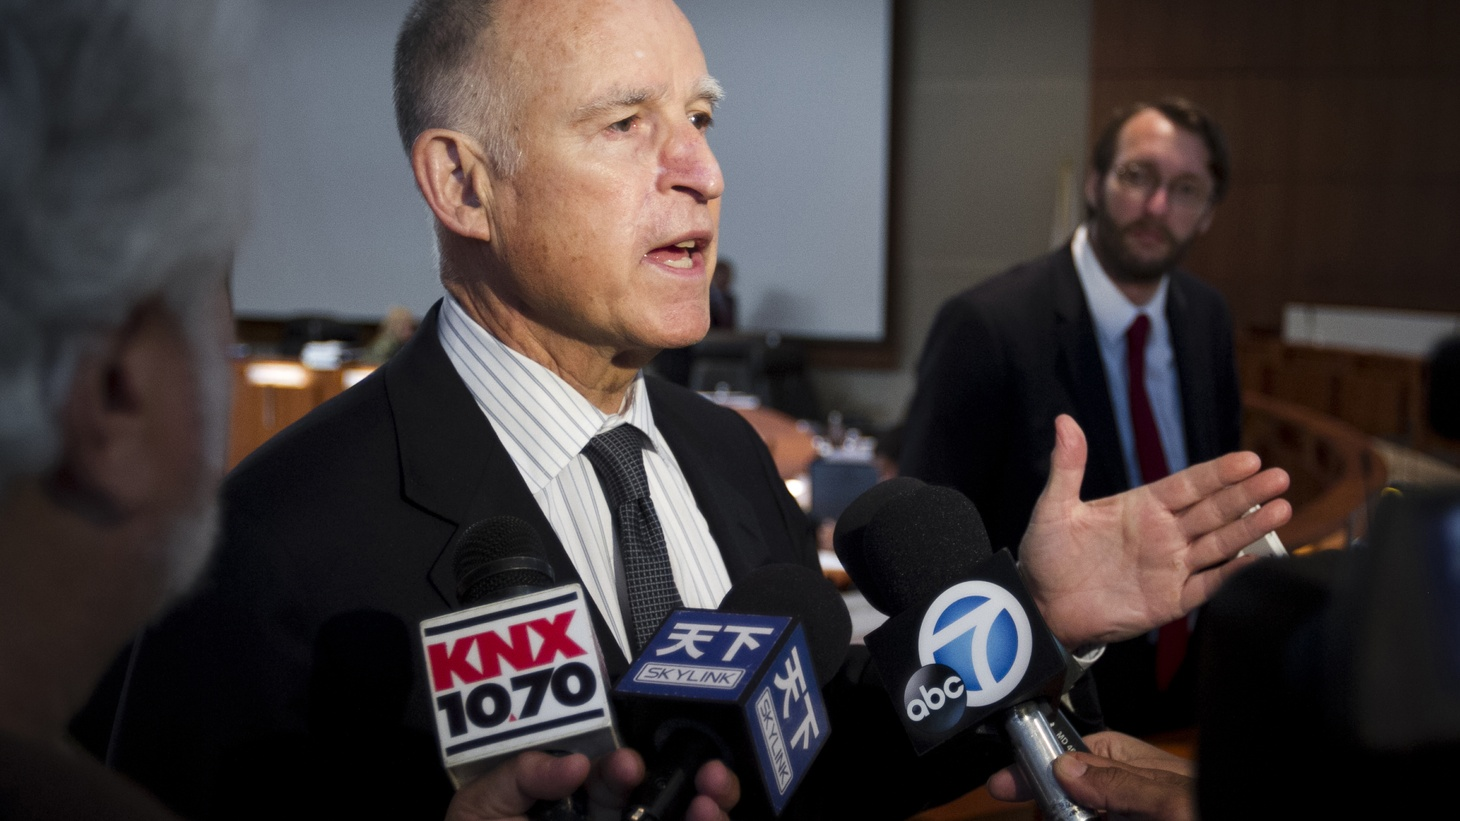 Jerry Brown wants to be the only four-term Governor in California history, but you'd hardly know he's campaigning for re-election next month. We compare the pragmatist he is now with the reformer he was when he first was elected four decades ago.